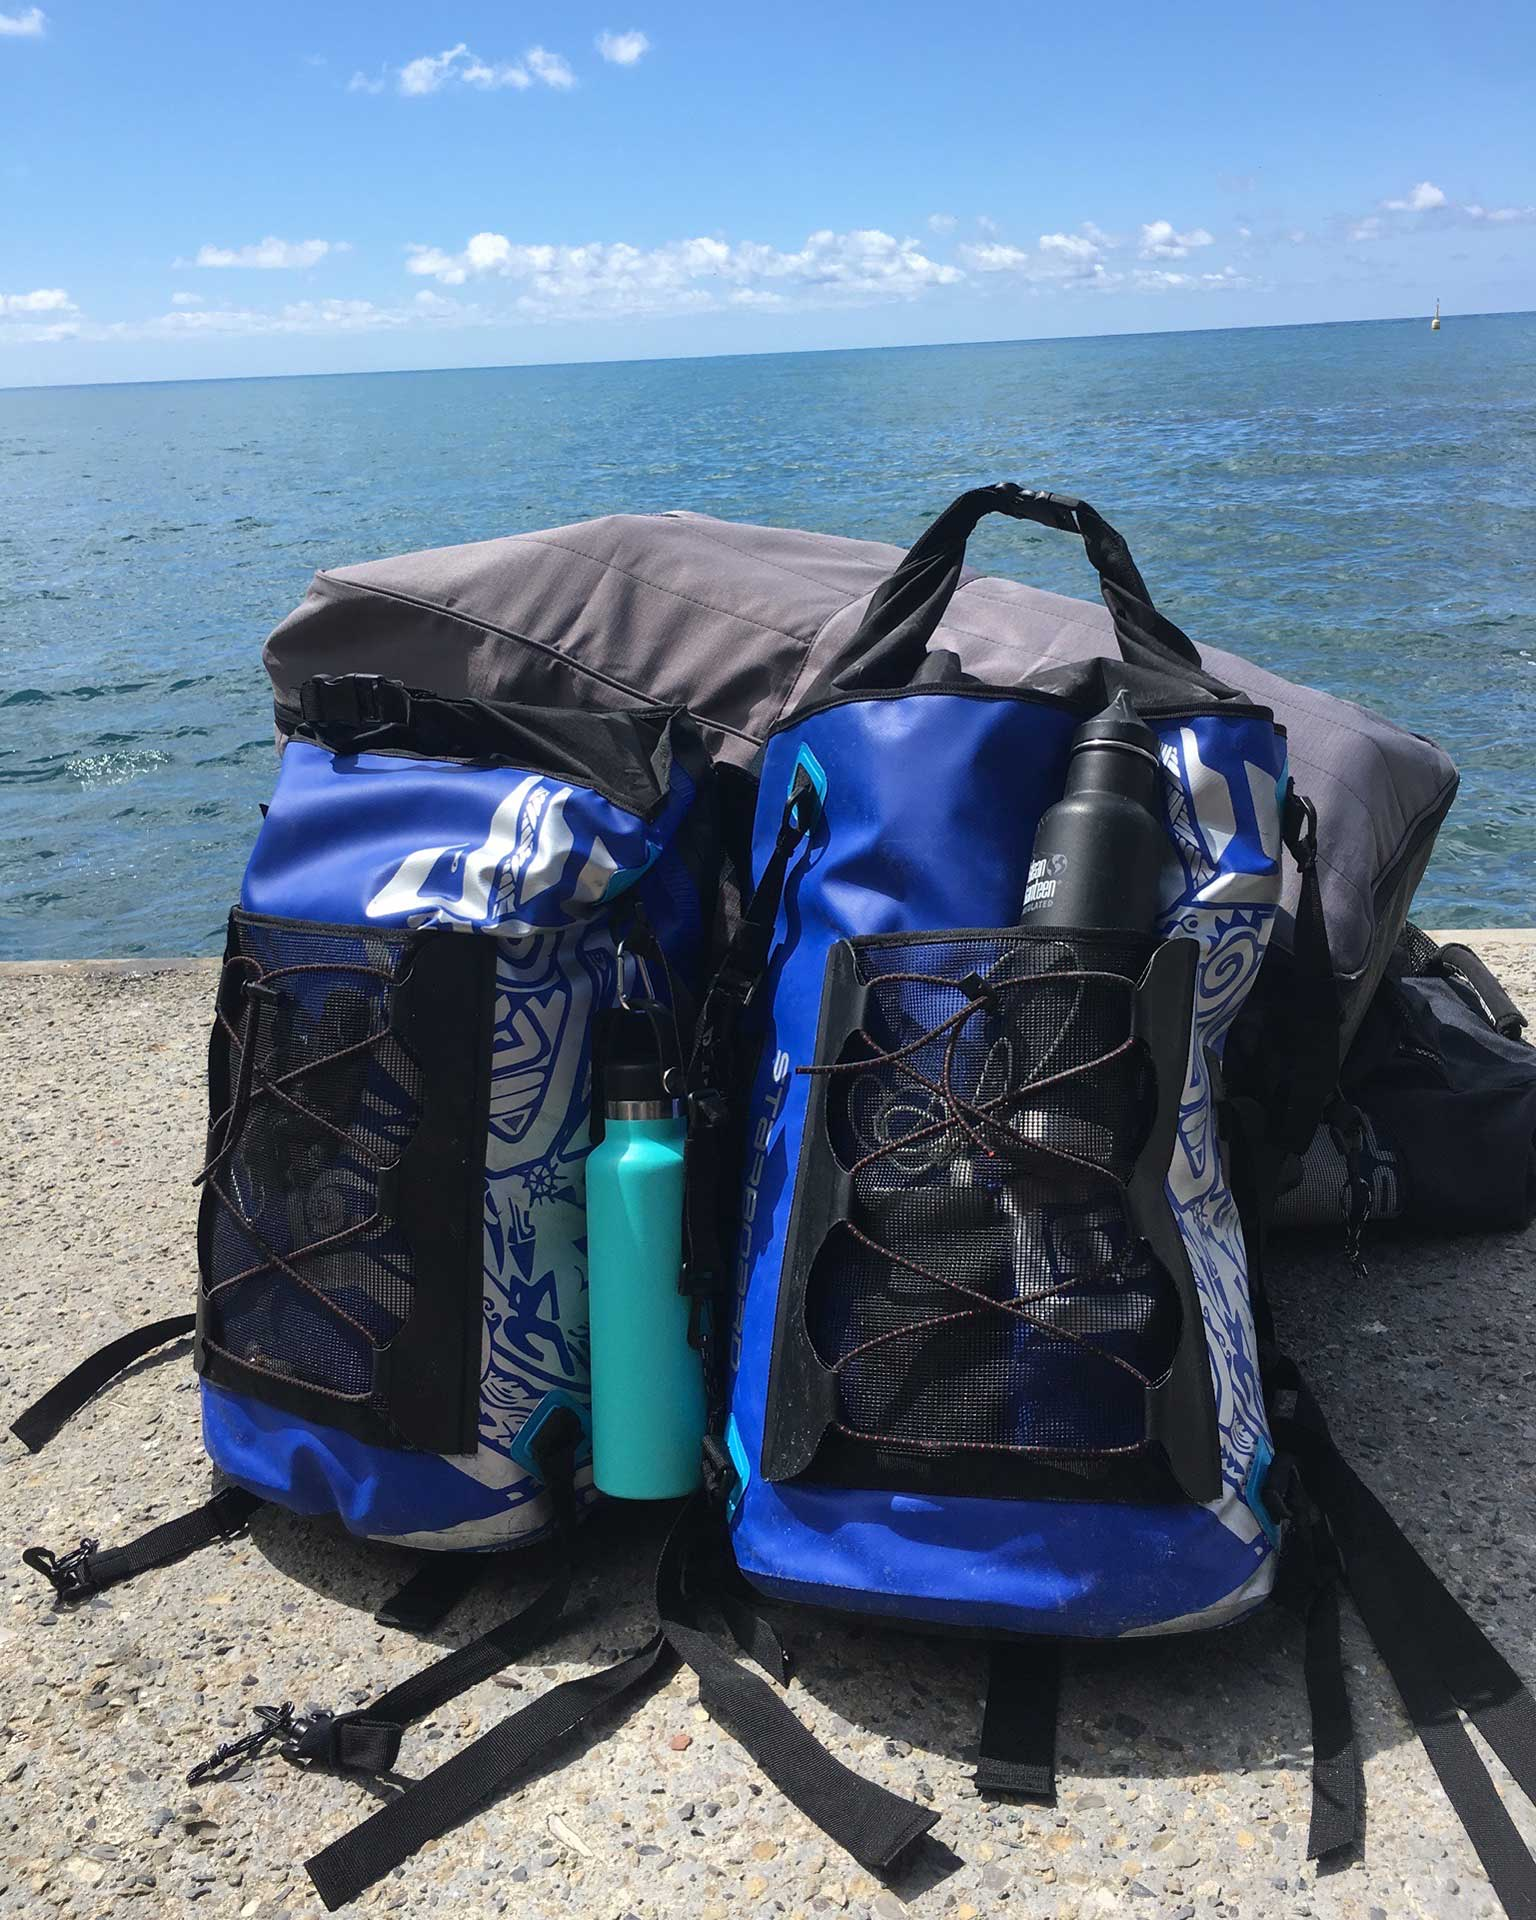 The-Three-Day-Effect-in-Italy-with-Linzi-Hawkin-Cinque-Terre-Stand-Up-Paddleboarding-adventure-dry-bag